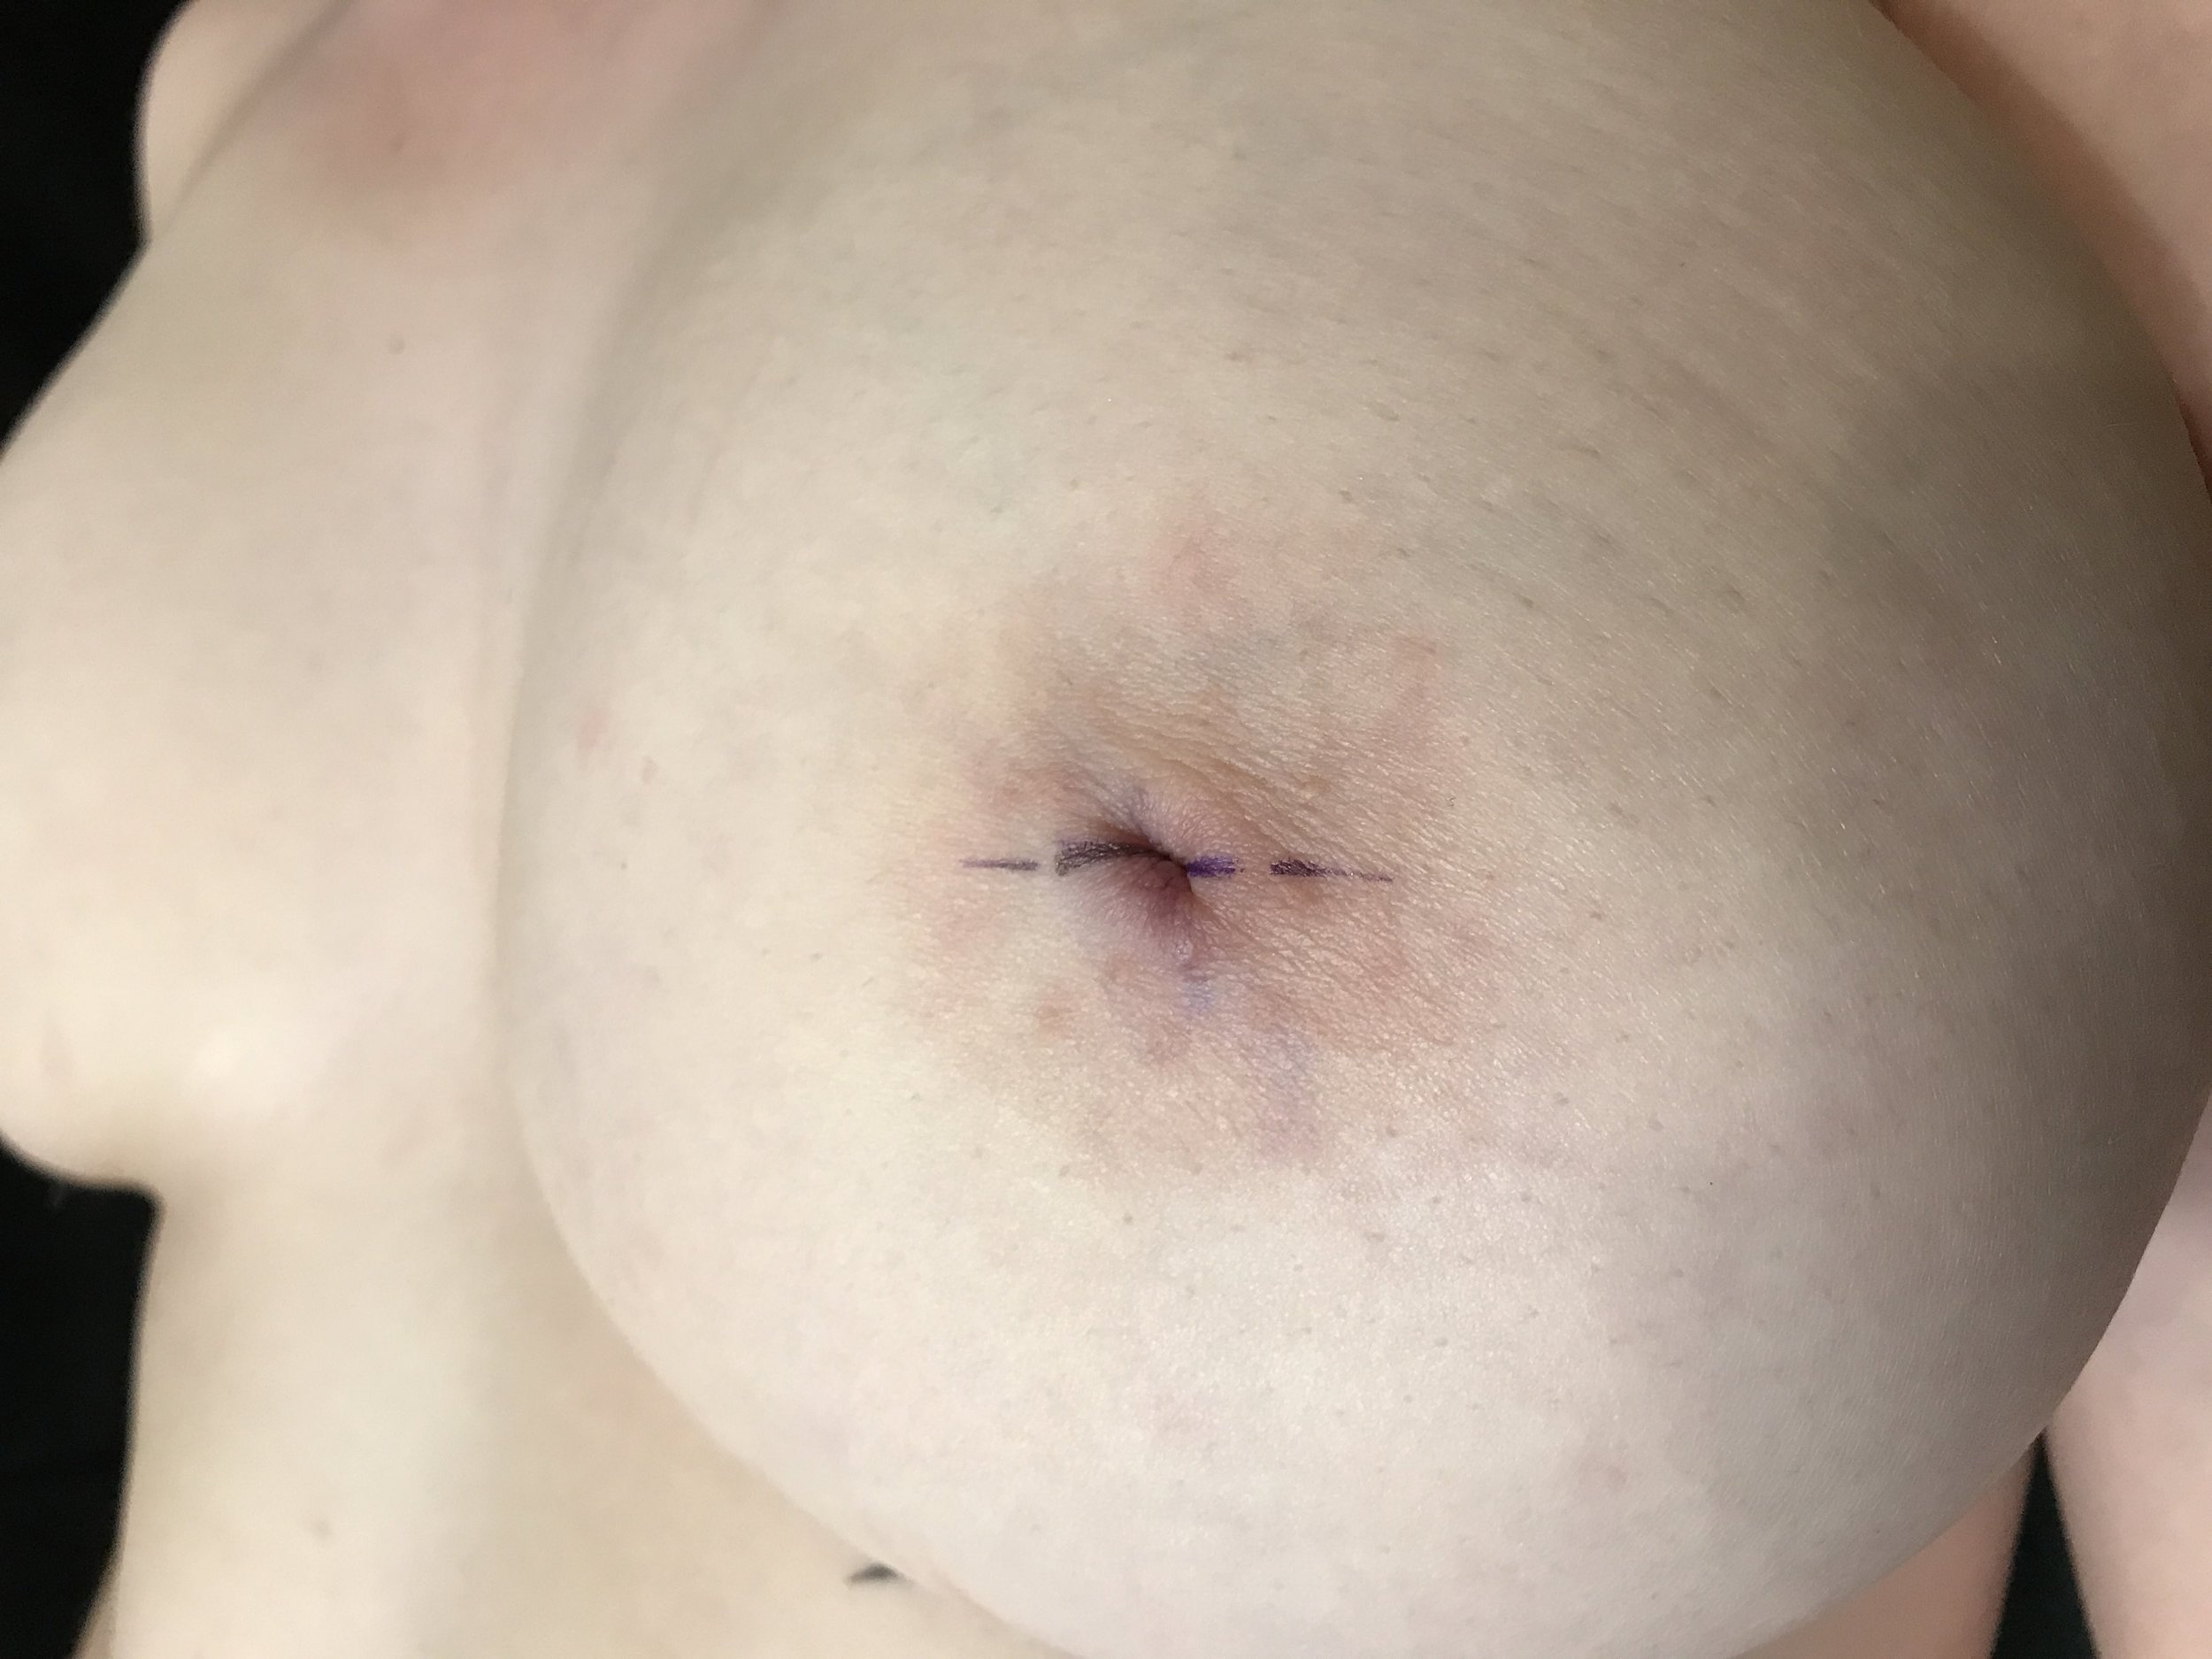 Inverted nipple prior to piercing